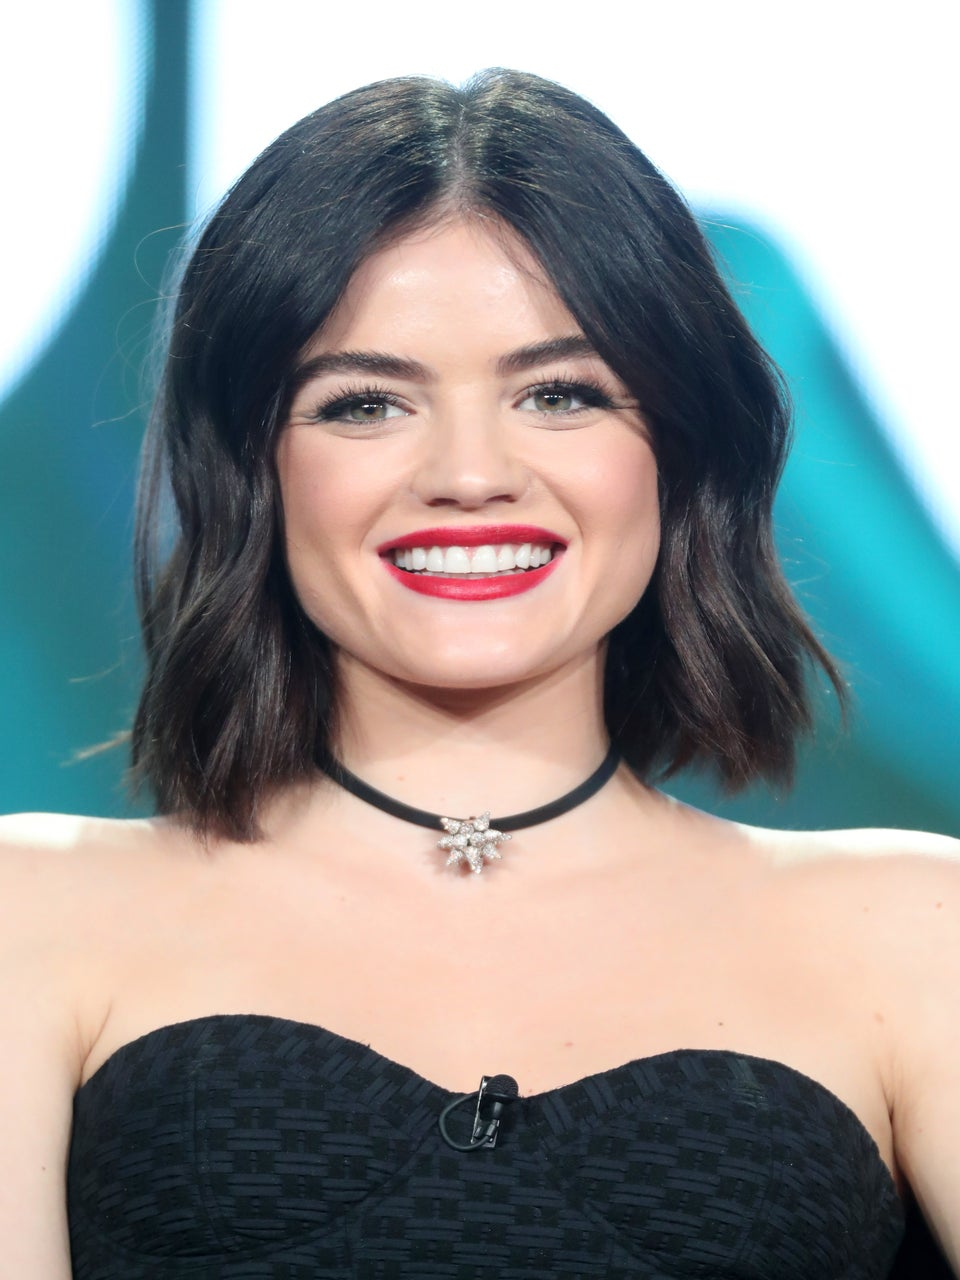 Black Twitter Was Not Here For 'Pretty Little Liars' Actress Lucy Hale & Her Non-Existent Baby Hairs